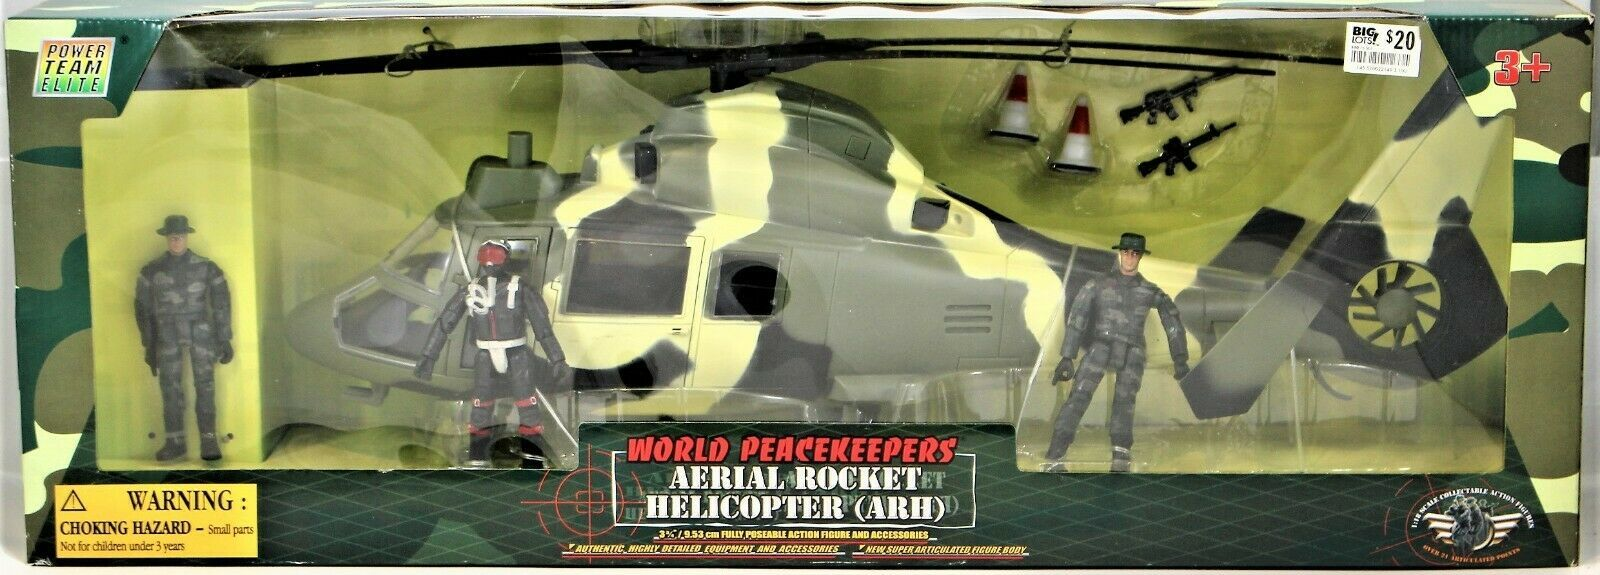 World Peacekeepers Power Team Elite Aerial Rocket Helicopter (ARH) 1:18 Scale image 2